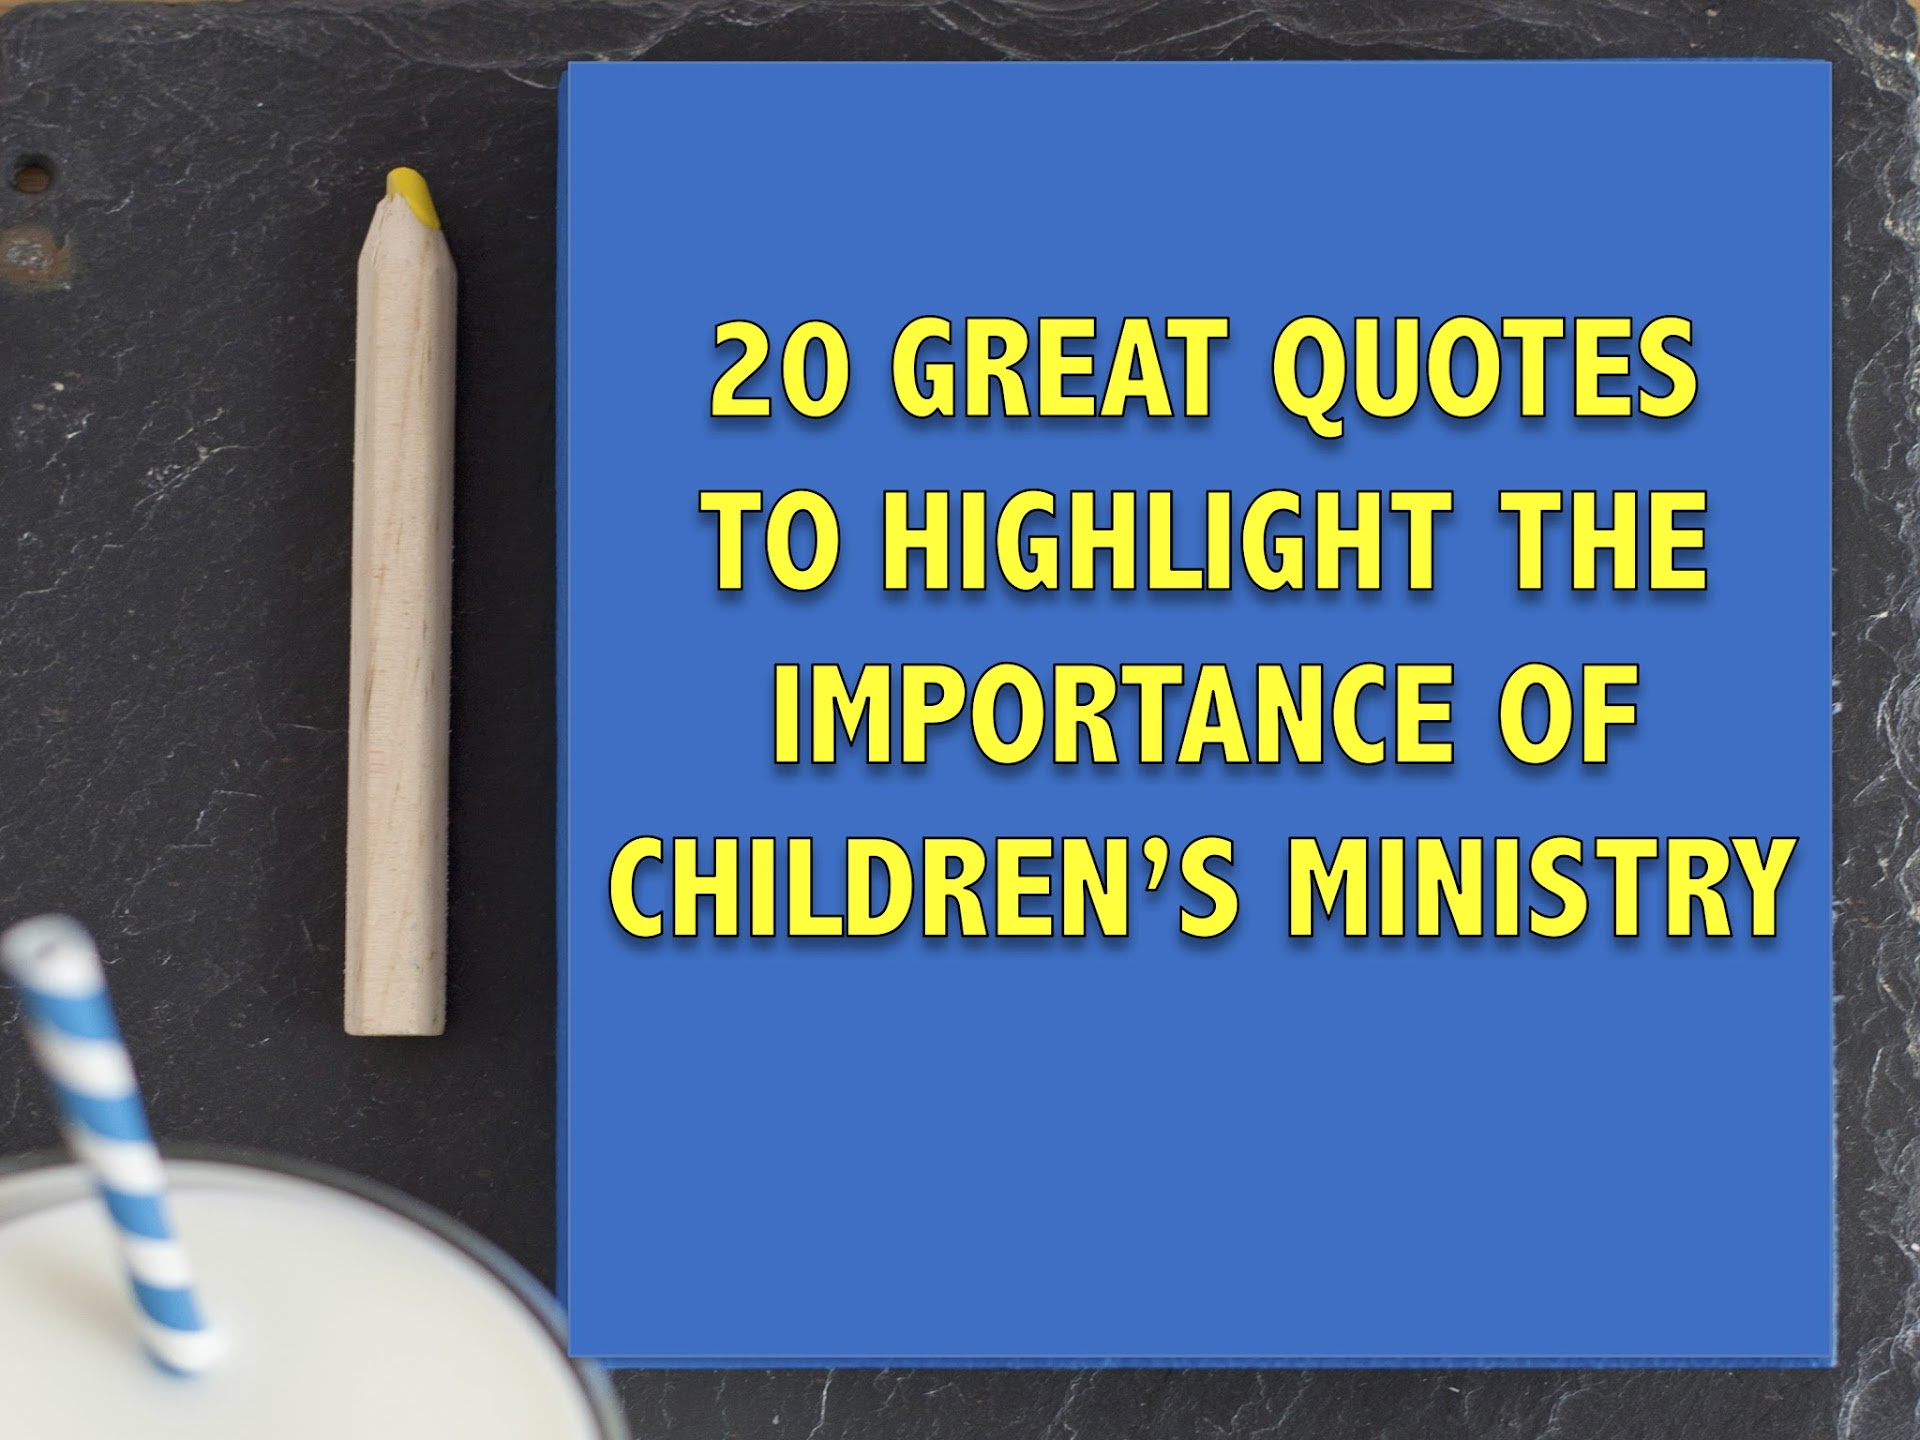 20 Great Quotes to Highlight the Importance of Children's Ministry